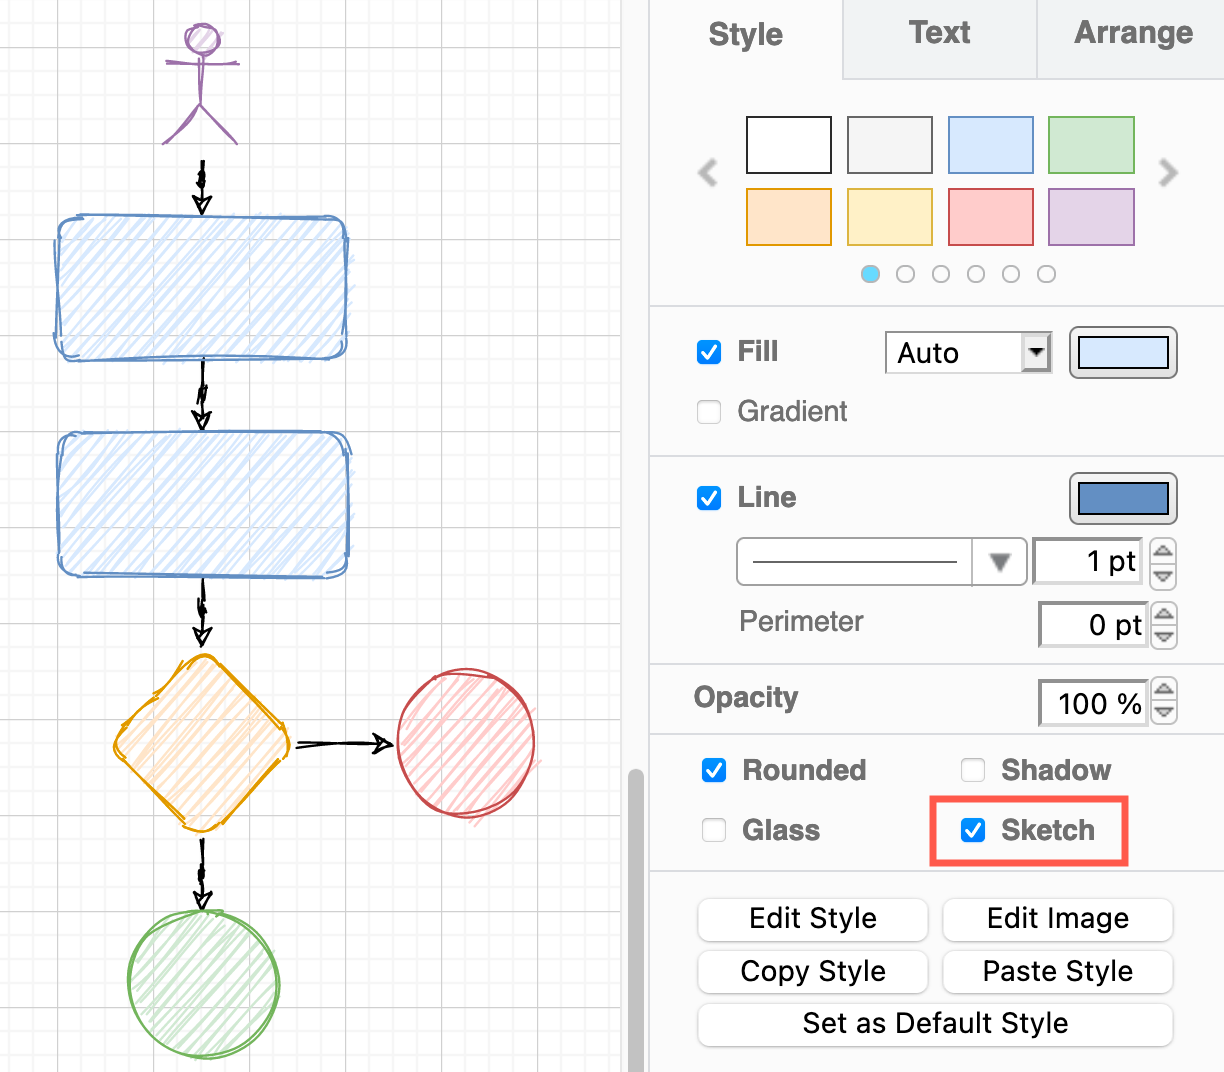 Click the Sketch checkbox to make the selected shapes and connectors appear roughly hand drawn